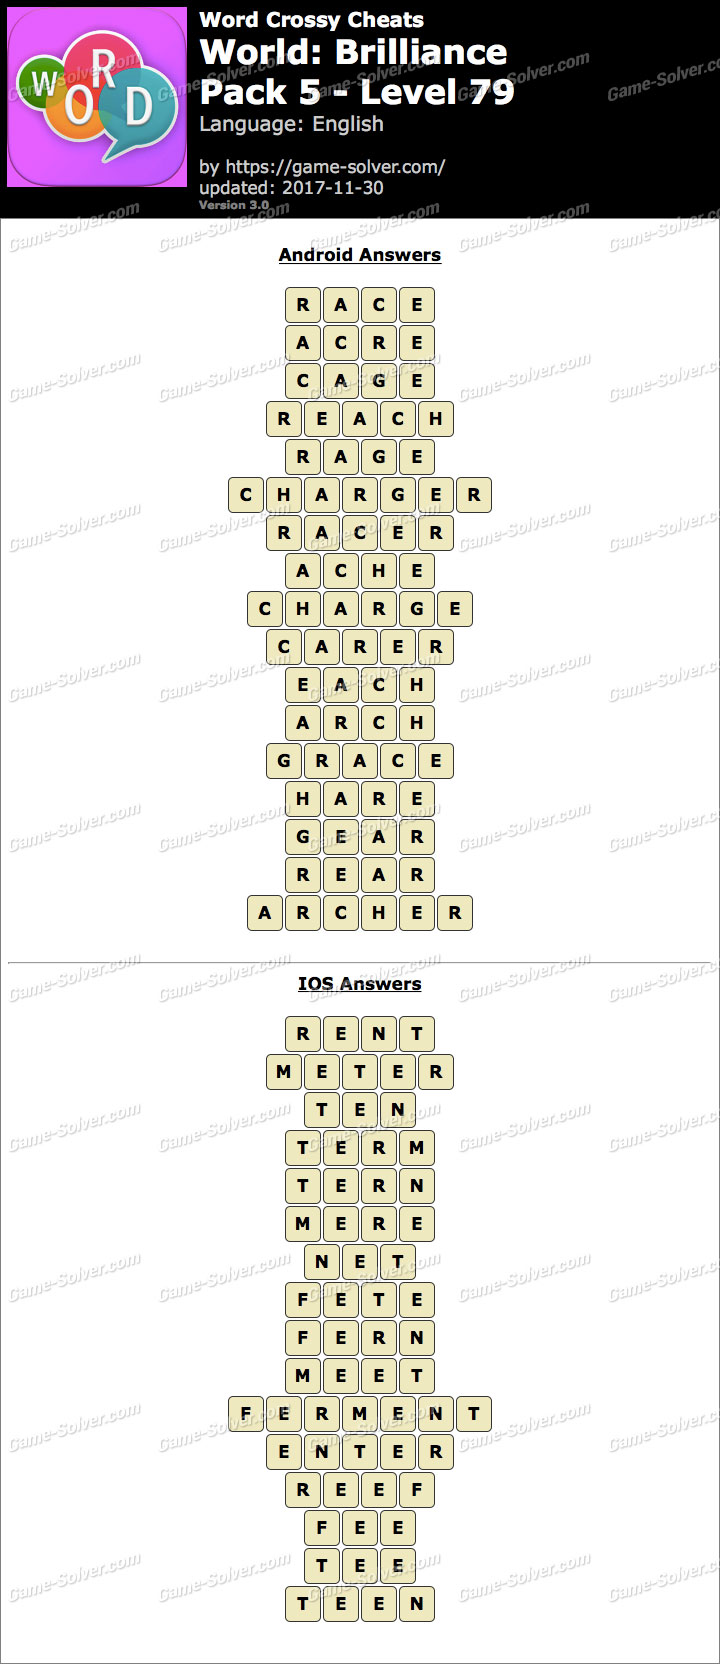 Word Crossy Brilliance Pack 5 Level 79 Answers